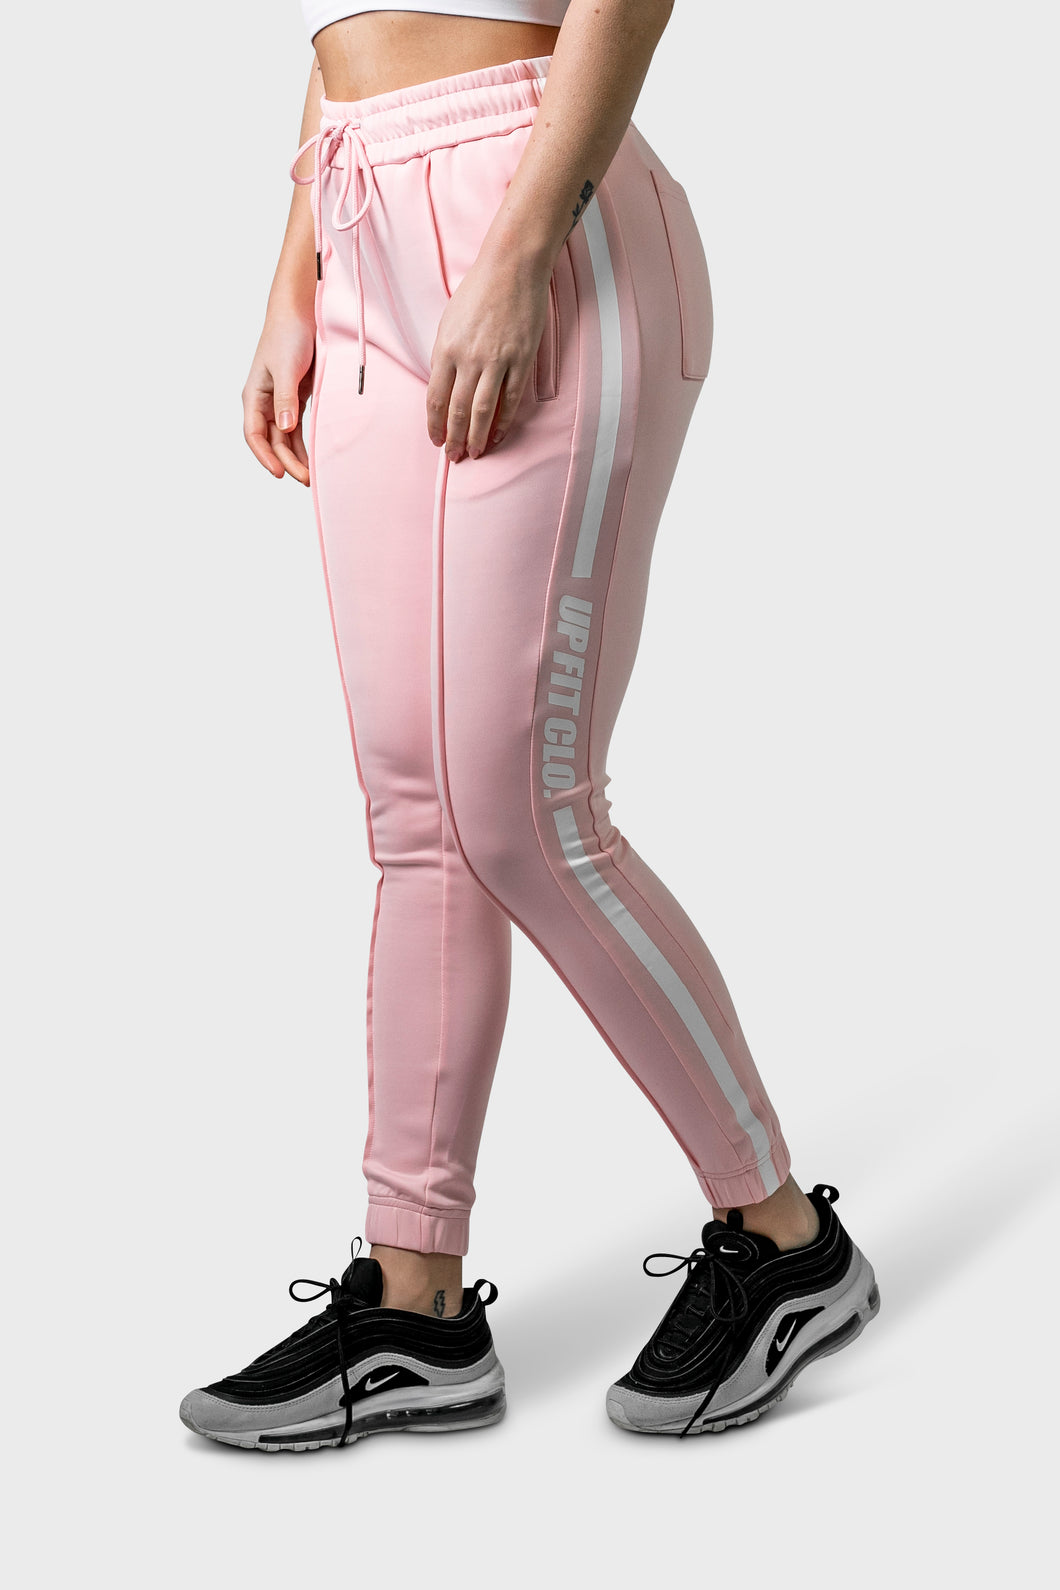 UPFITCLO. LADIES TRACKPANTS PINK